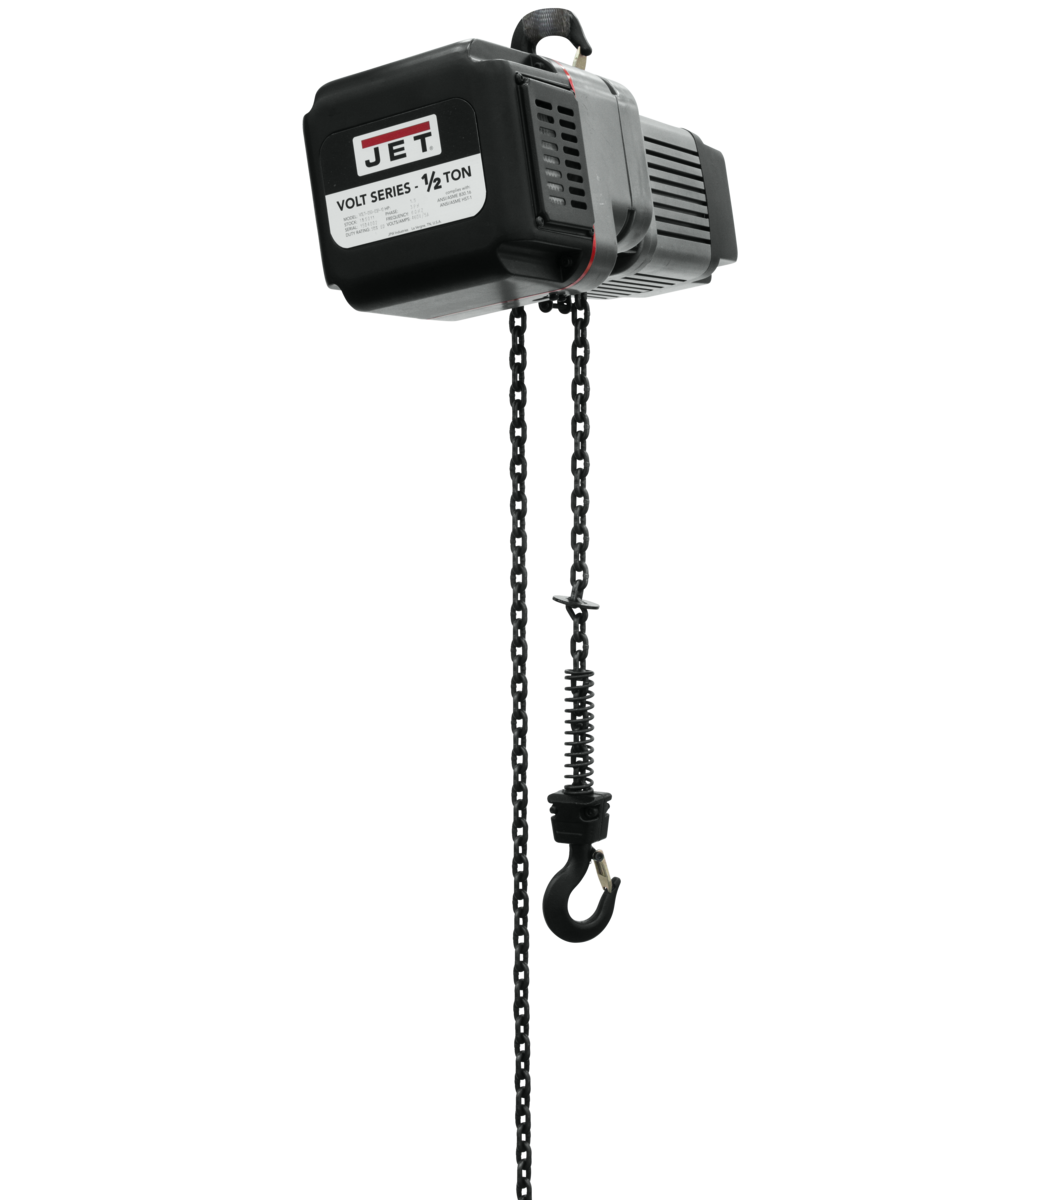 VOLT 1/2T VARIABLE-SPEED ELECTRIC HOIST 3PH 460V 20' LIFT